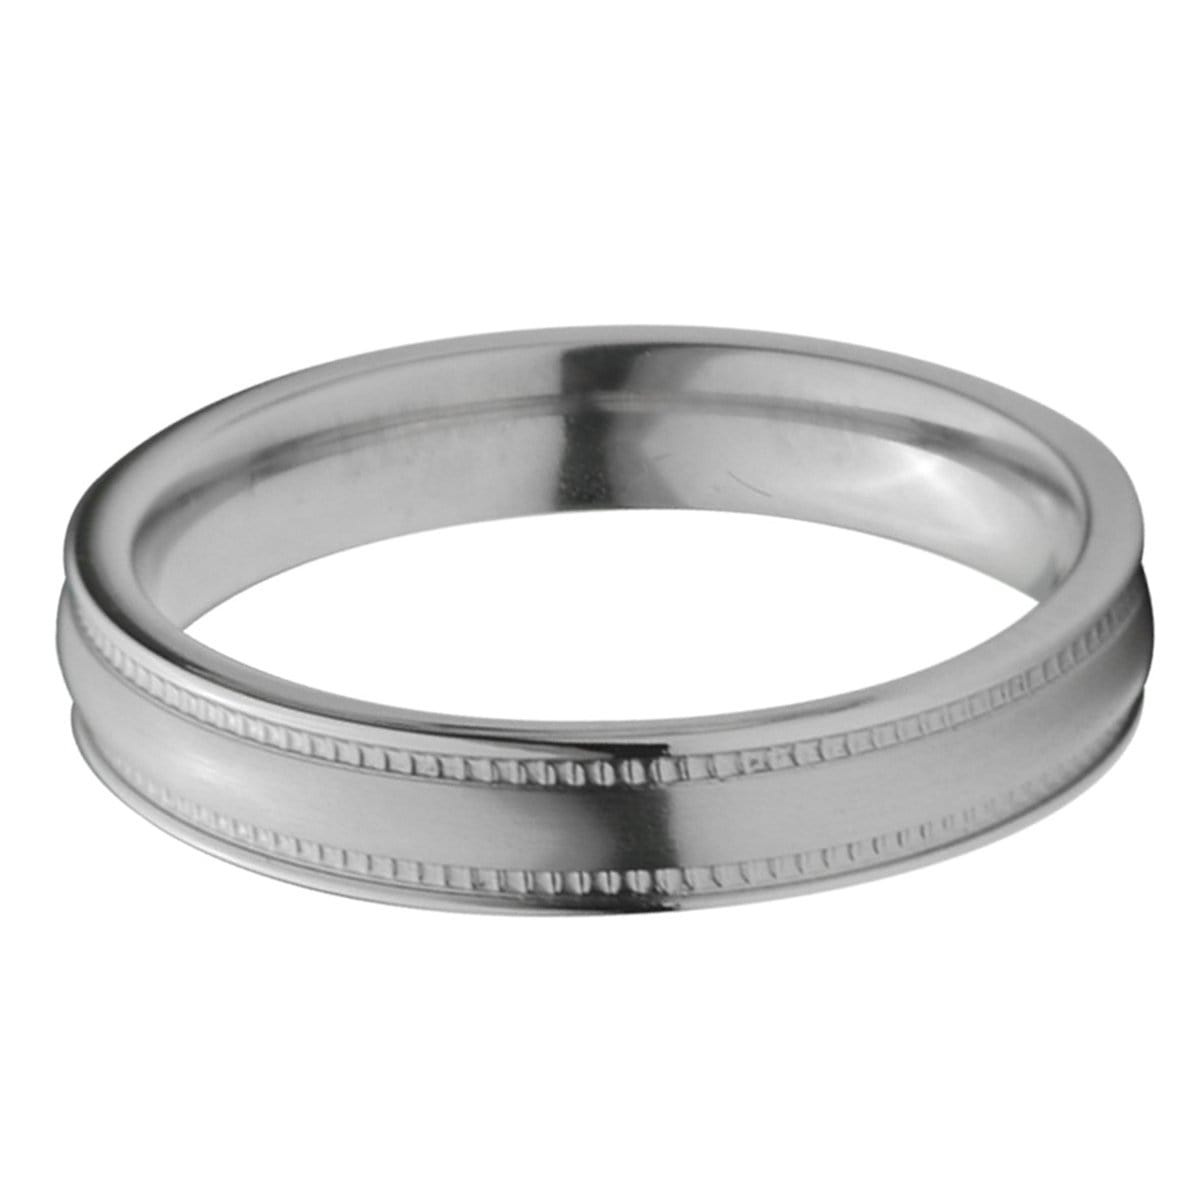 Silver Titanium 4mm Fancy Groove Border Band